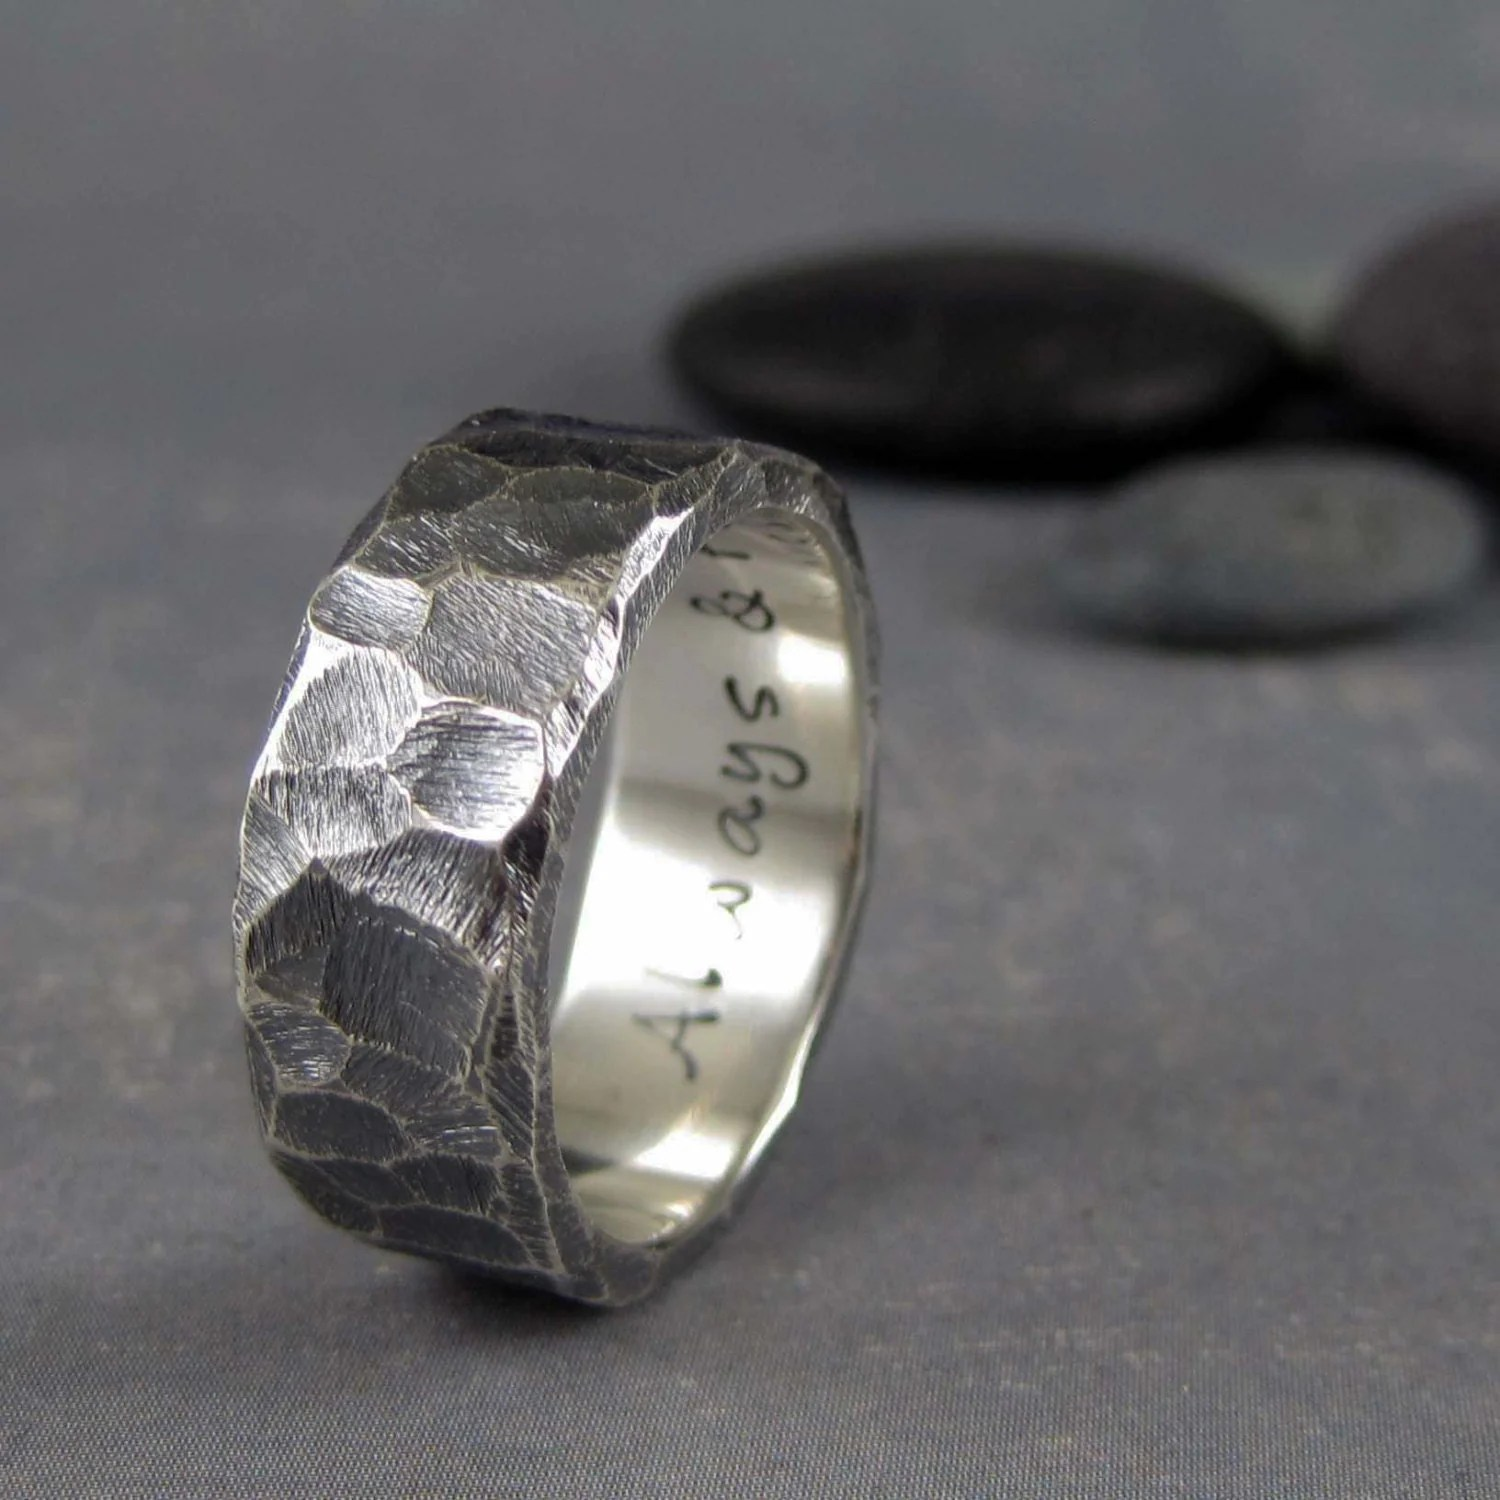 Rustic Mens Wedding Band Custom Engraved 8mm Rough Hewn